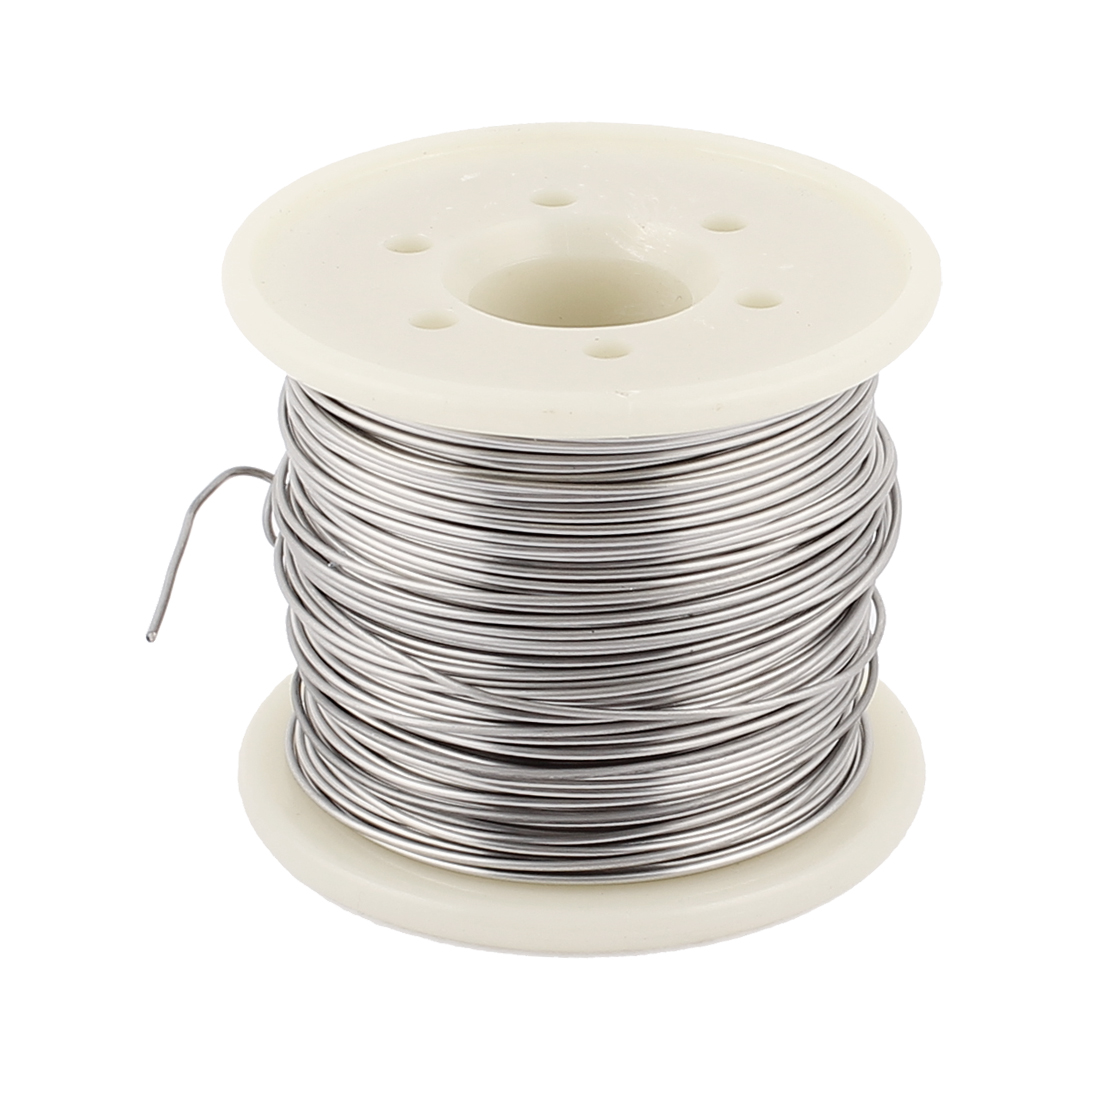 Nichrome 80 0.8mm 20 Gauge AWG 20M Roll 2.308 Ohms/m Heater Wire